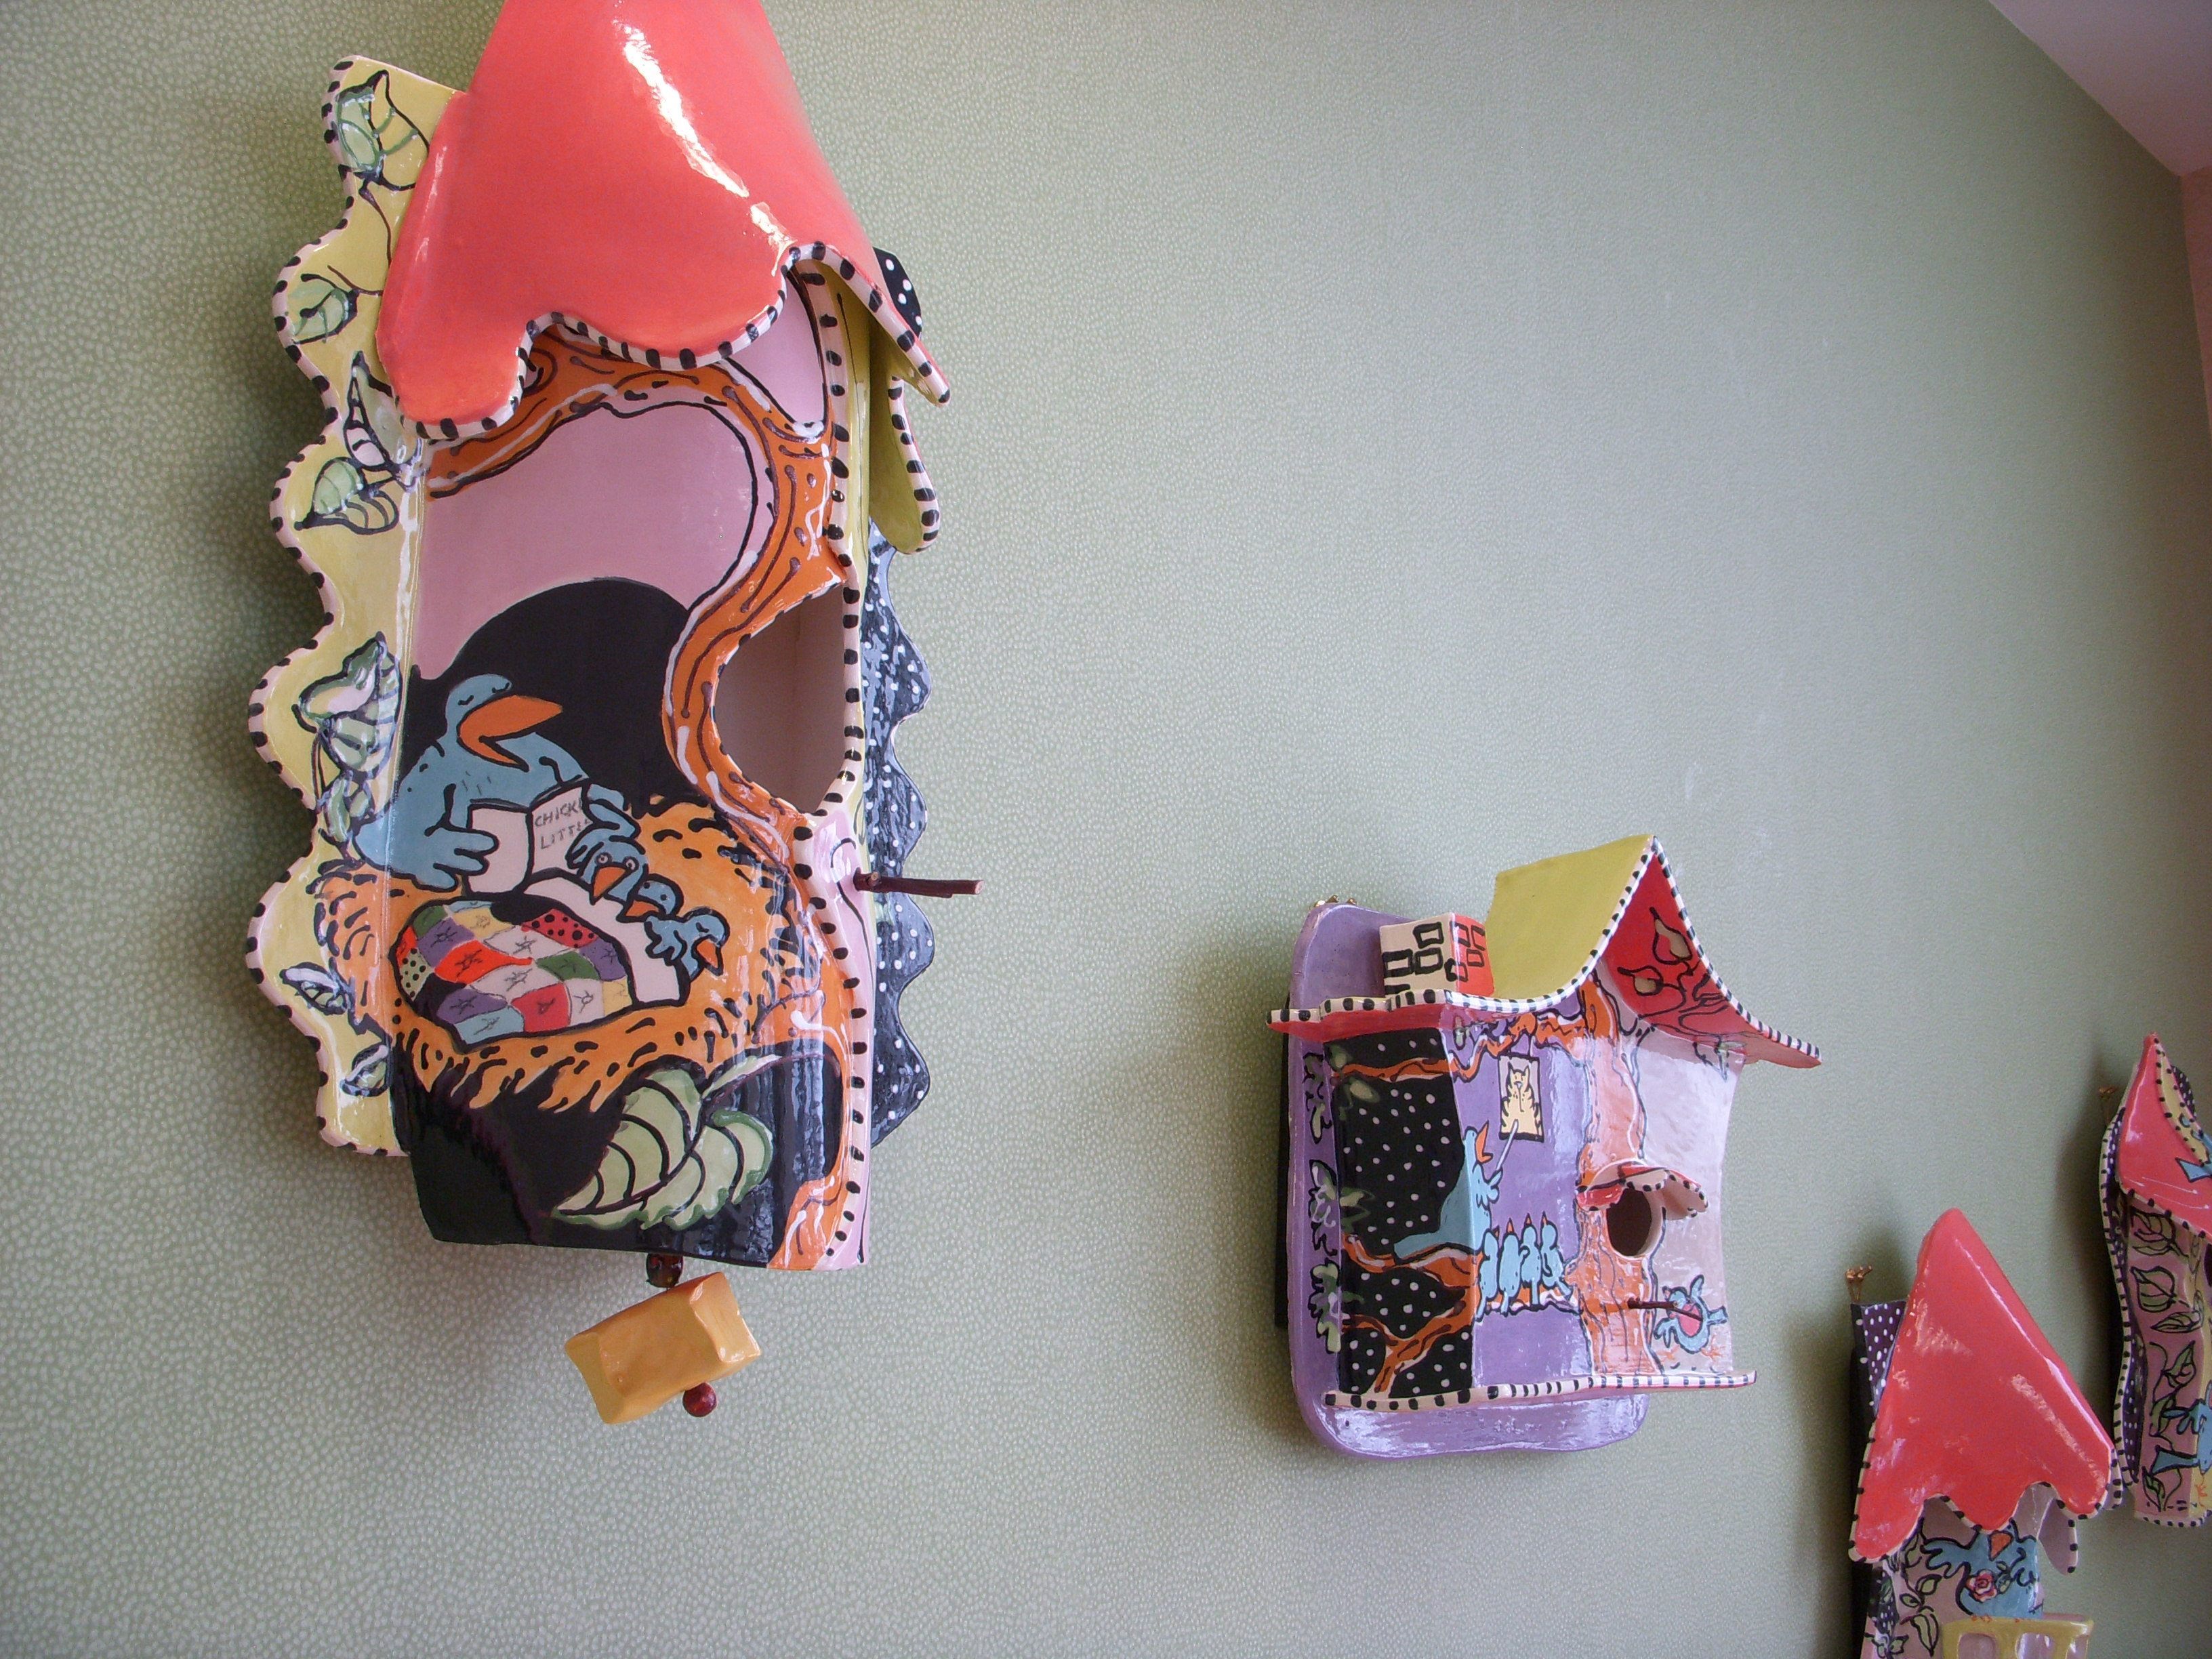 Birdhouse Installation